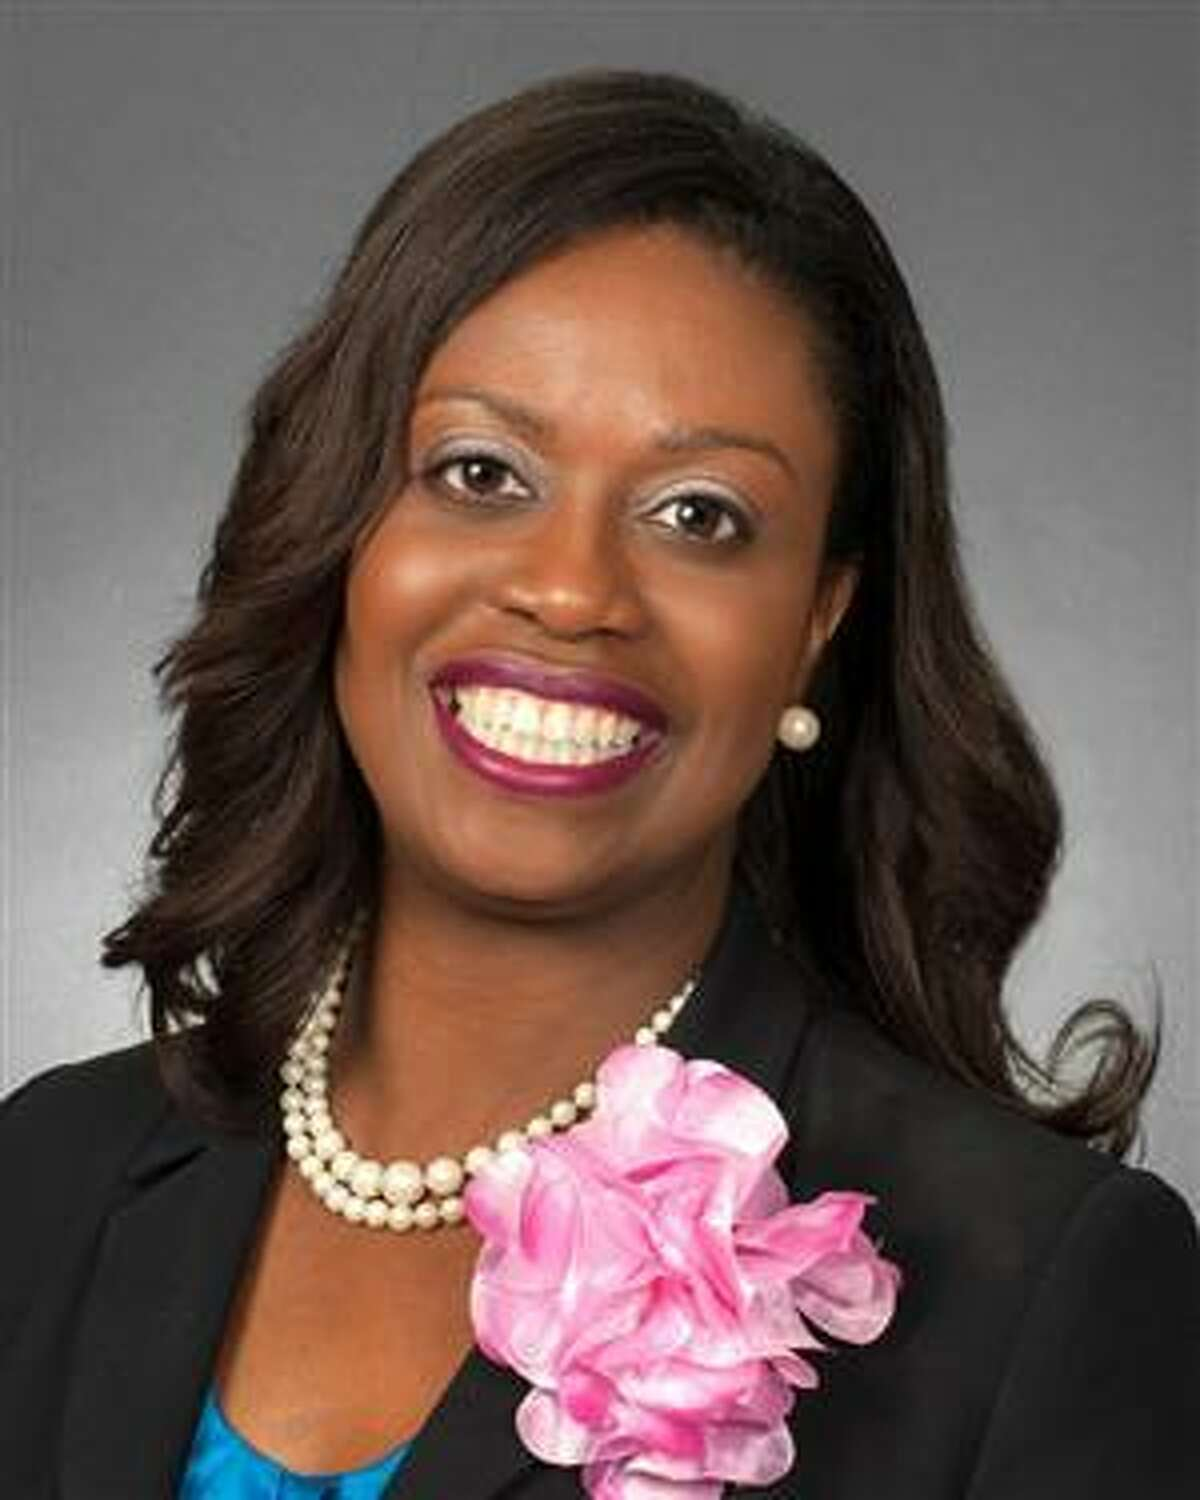 Fort Bend ISD trustee Addie Heyliger was voted to serve as the board president during the Nov. 16 regular meeting,